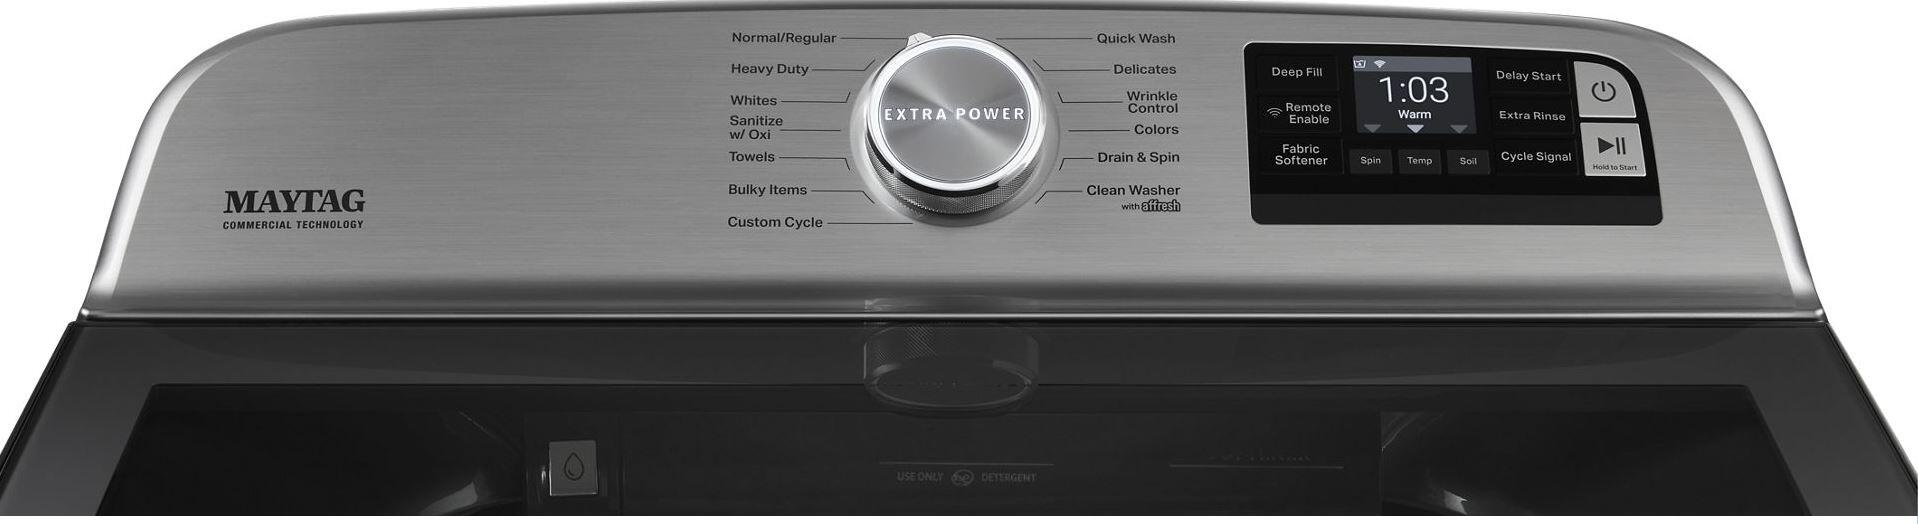 Maytag MVW7230HC 6 Cu. Ft. High Efficiency Top Load Washer In Metallic Slate